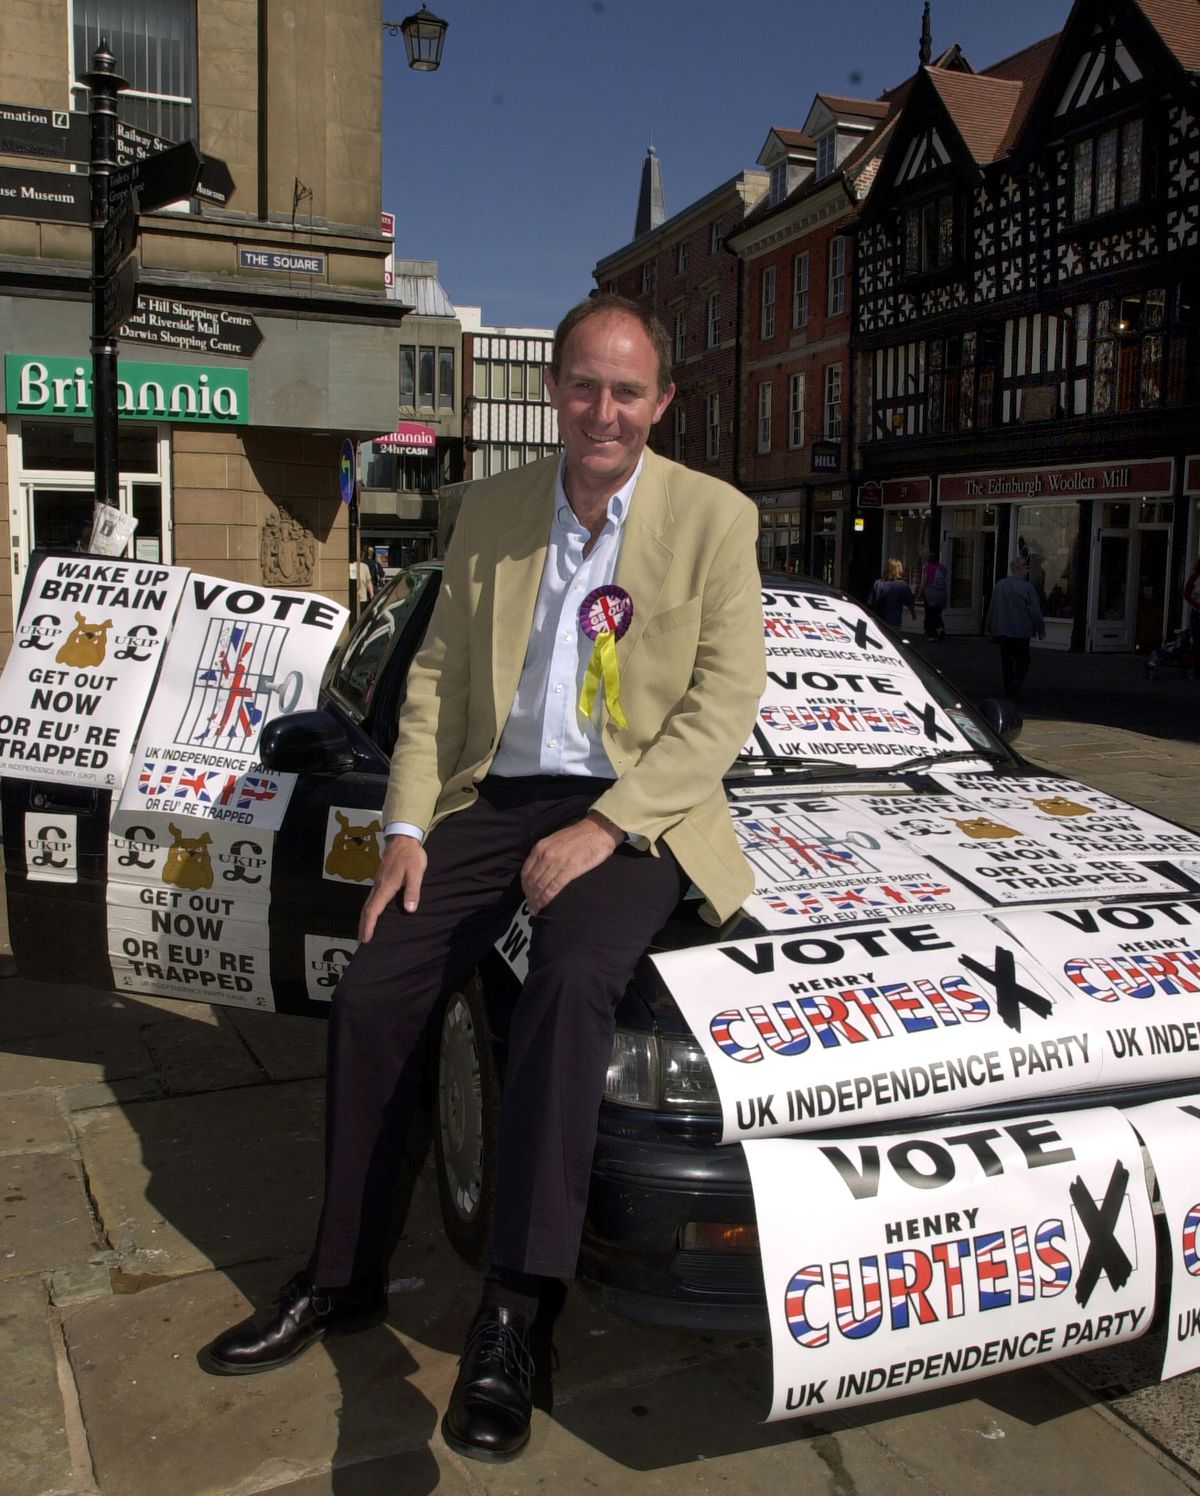 Henry Curteis during the 2001 general election campaign when he stood for UKIP in Shrewsbury